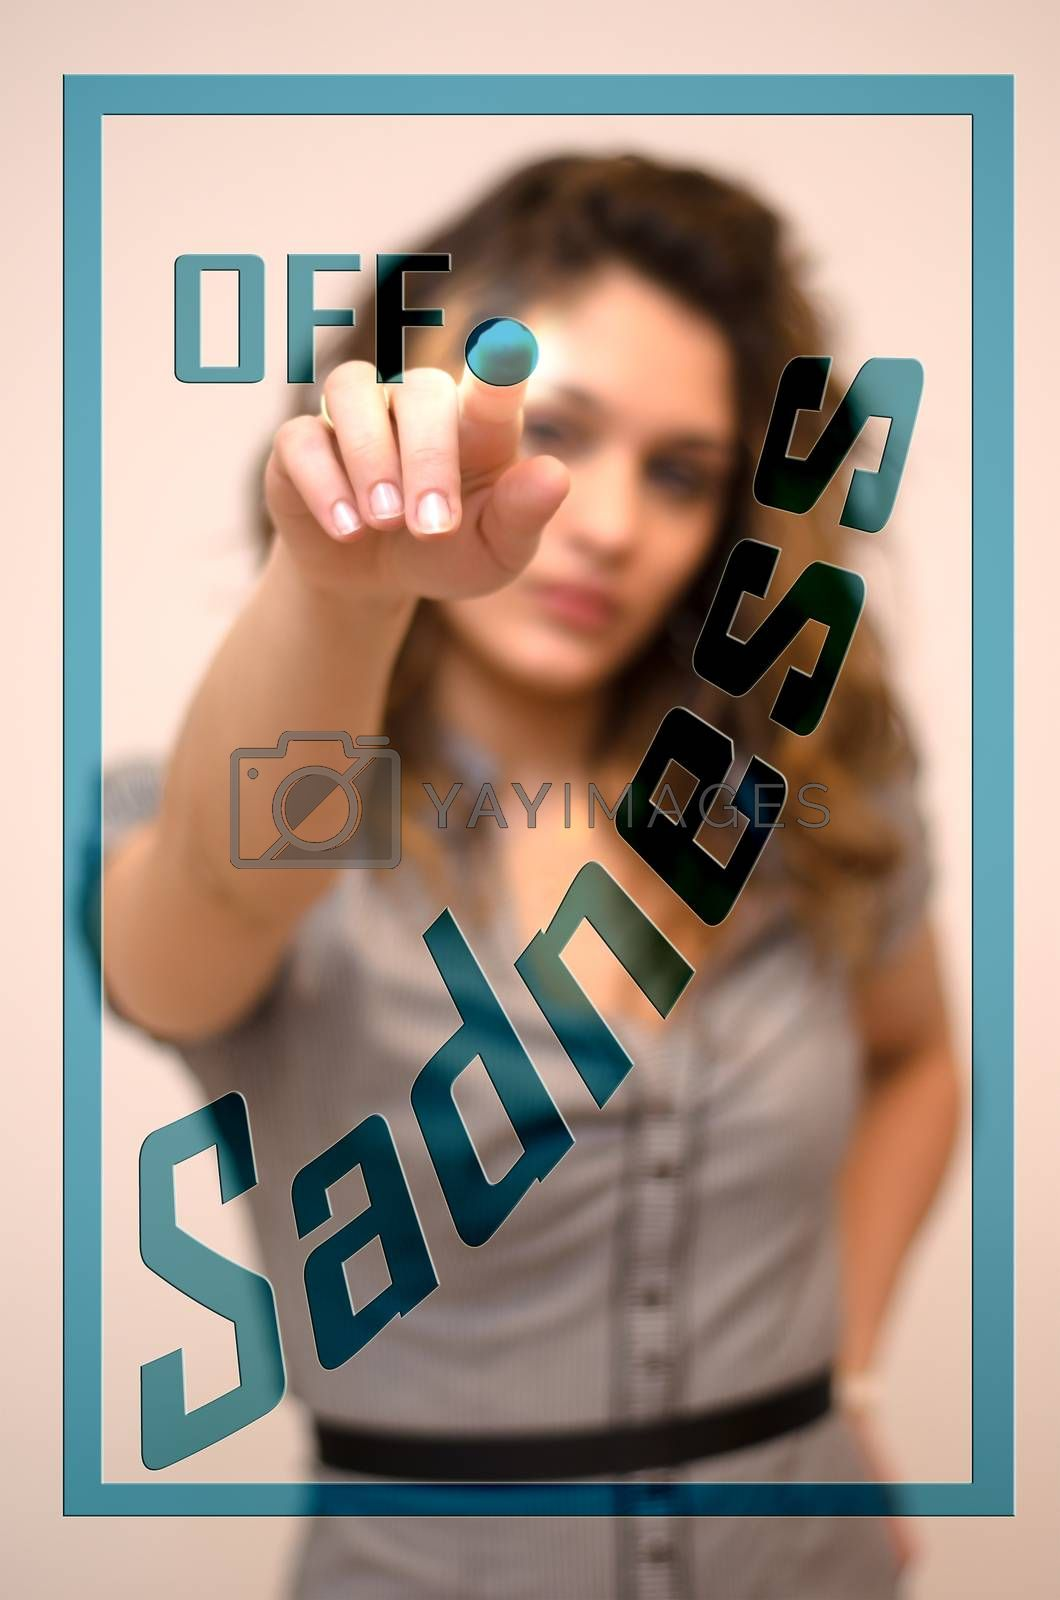 Royalty free image of woman switching off Sadness on digital interace by vepar5